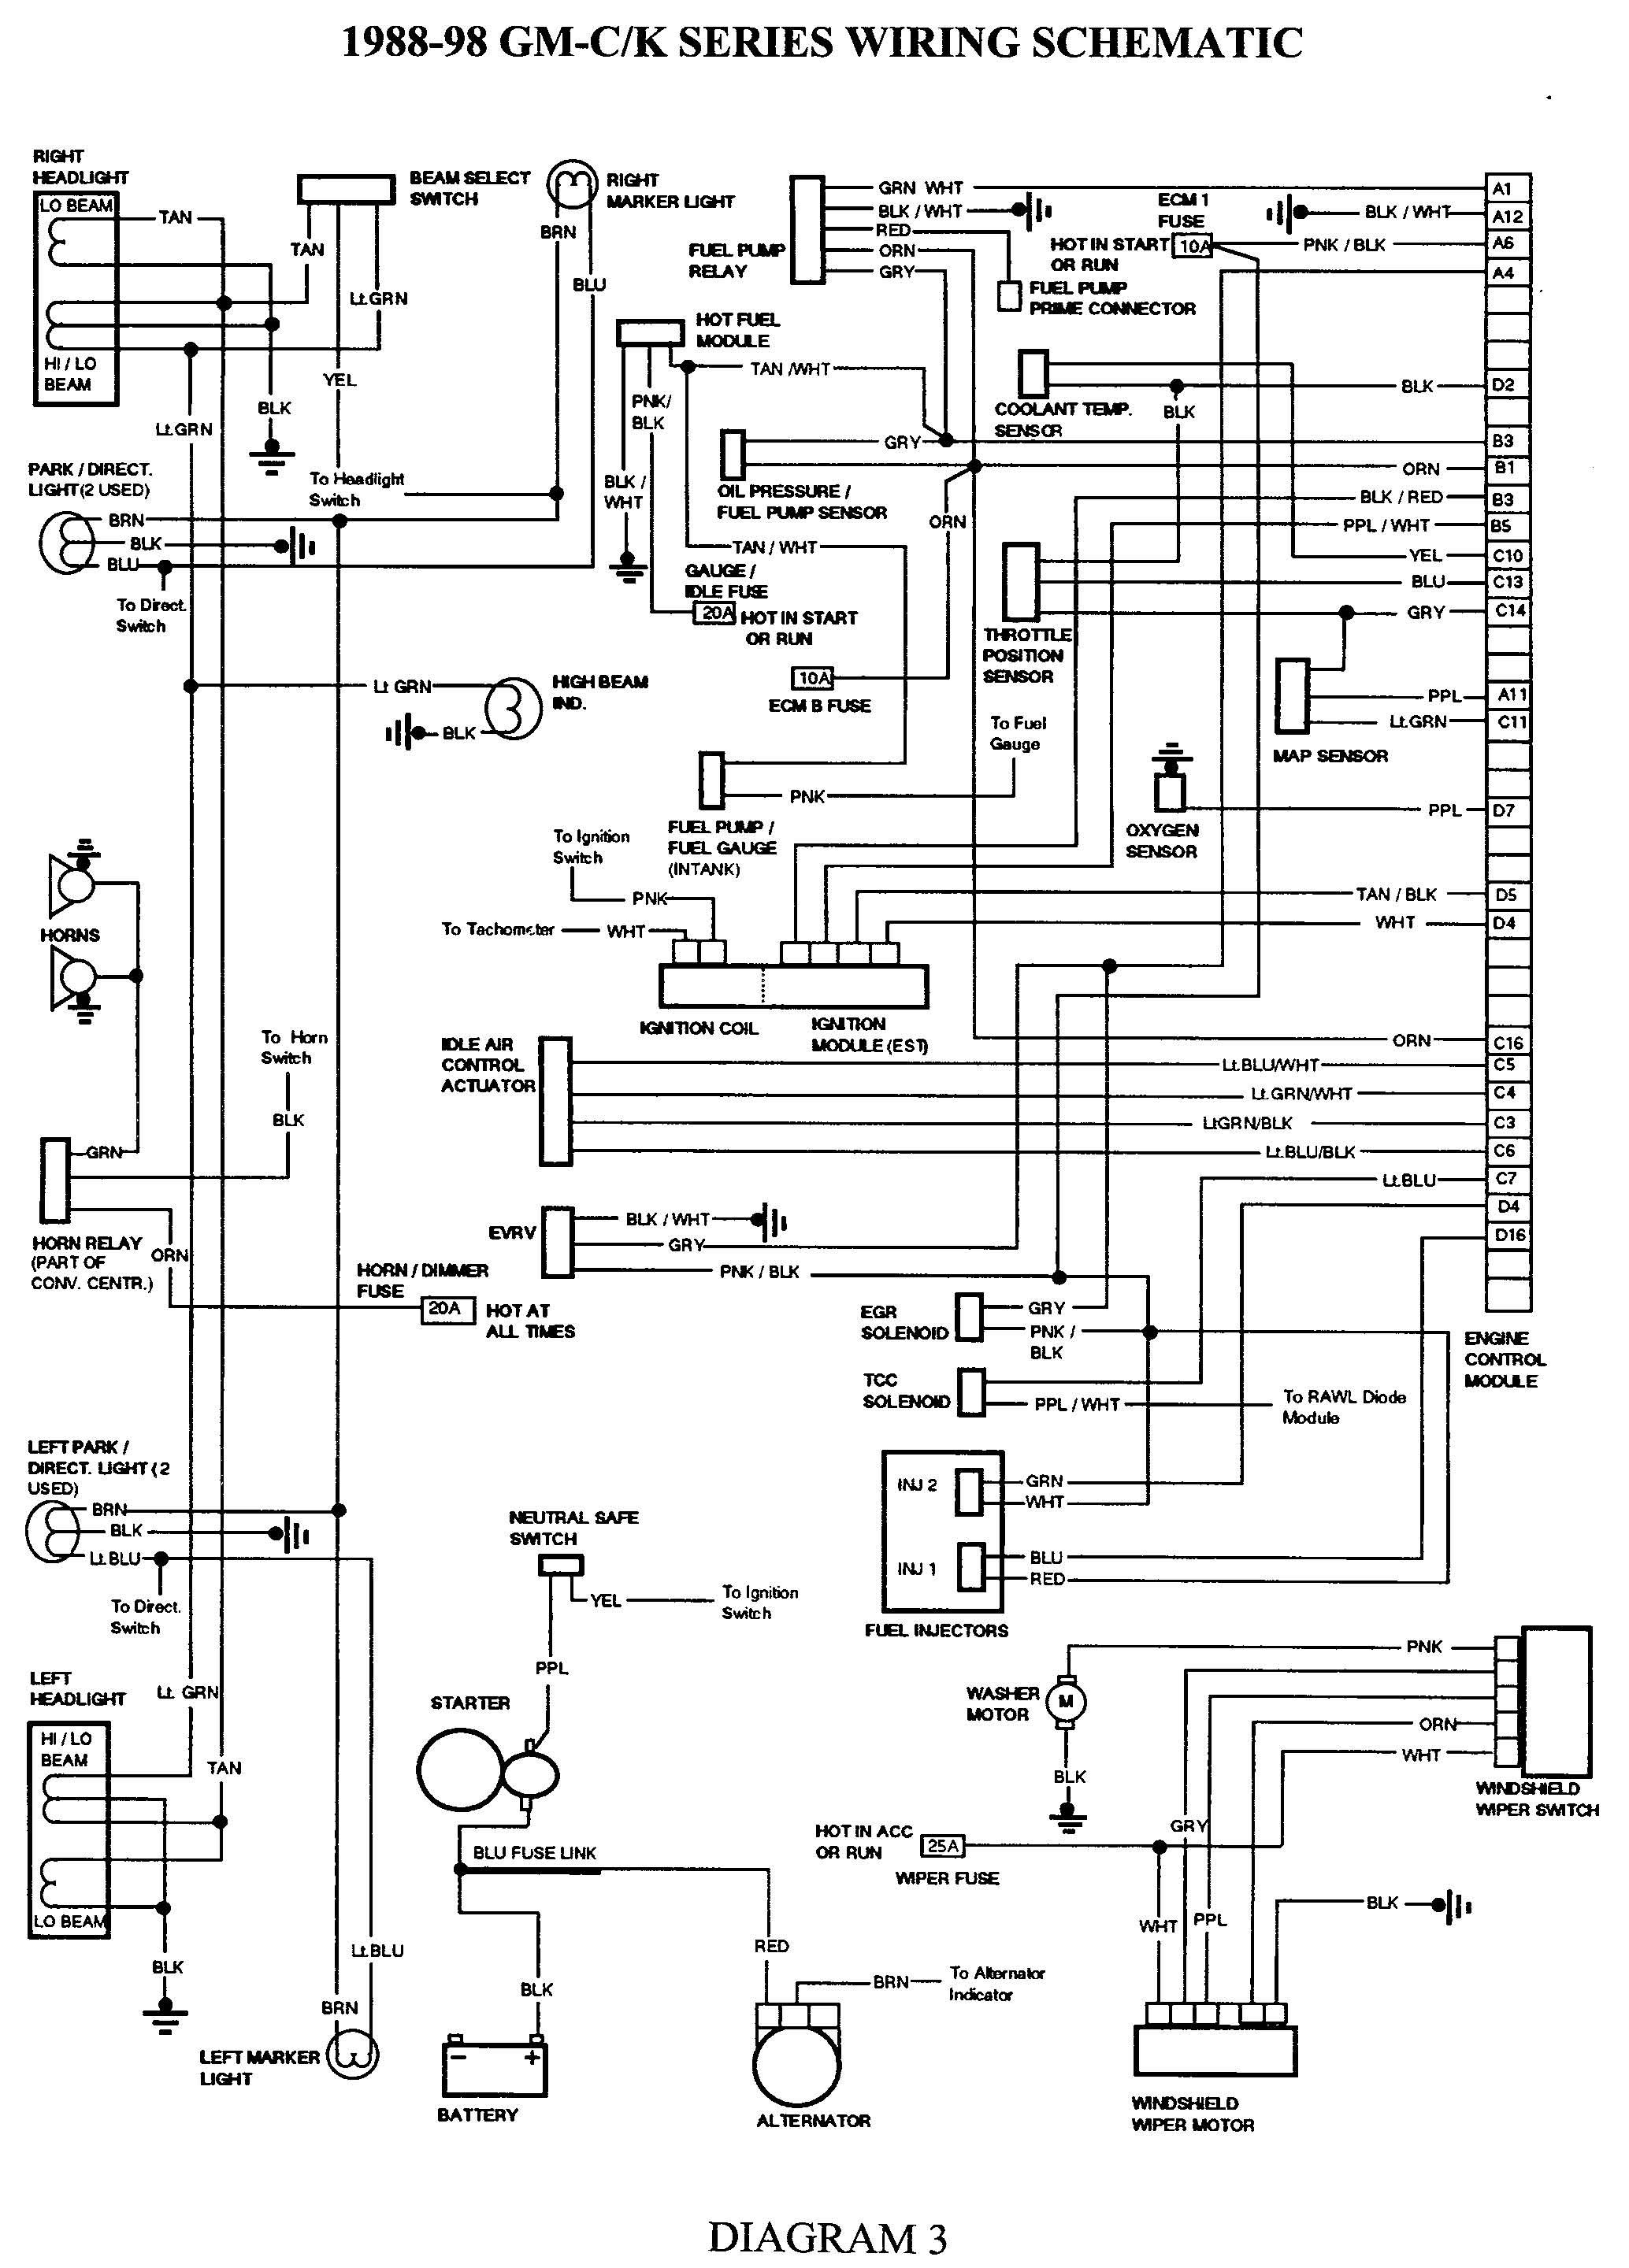 2003 chevy truck wiring harness diagram 1970 chevy truck wiring harness diagram gmc truck wiring diagrams on gm wiring harness diagram 88 ... #11